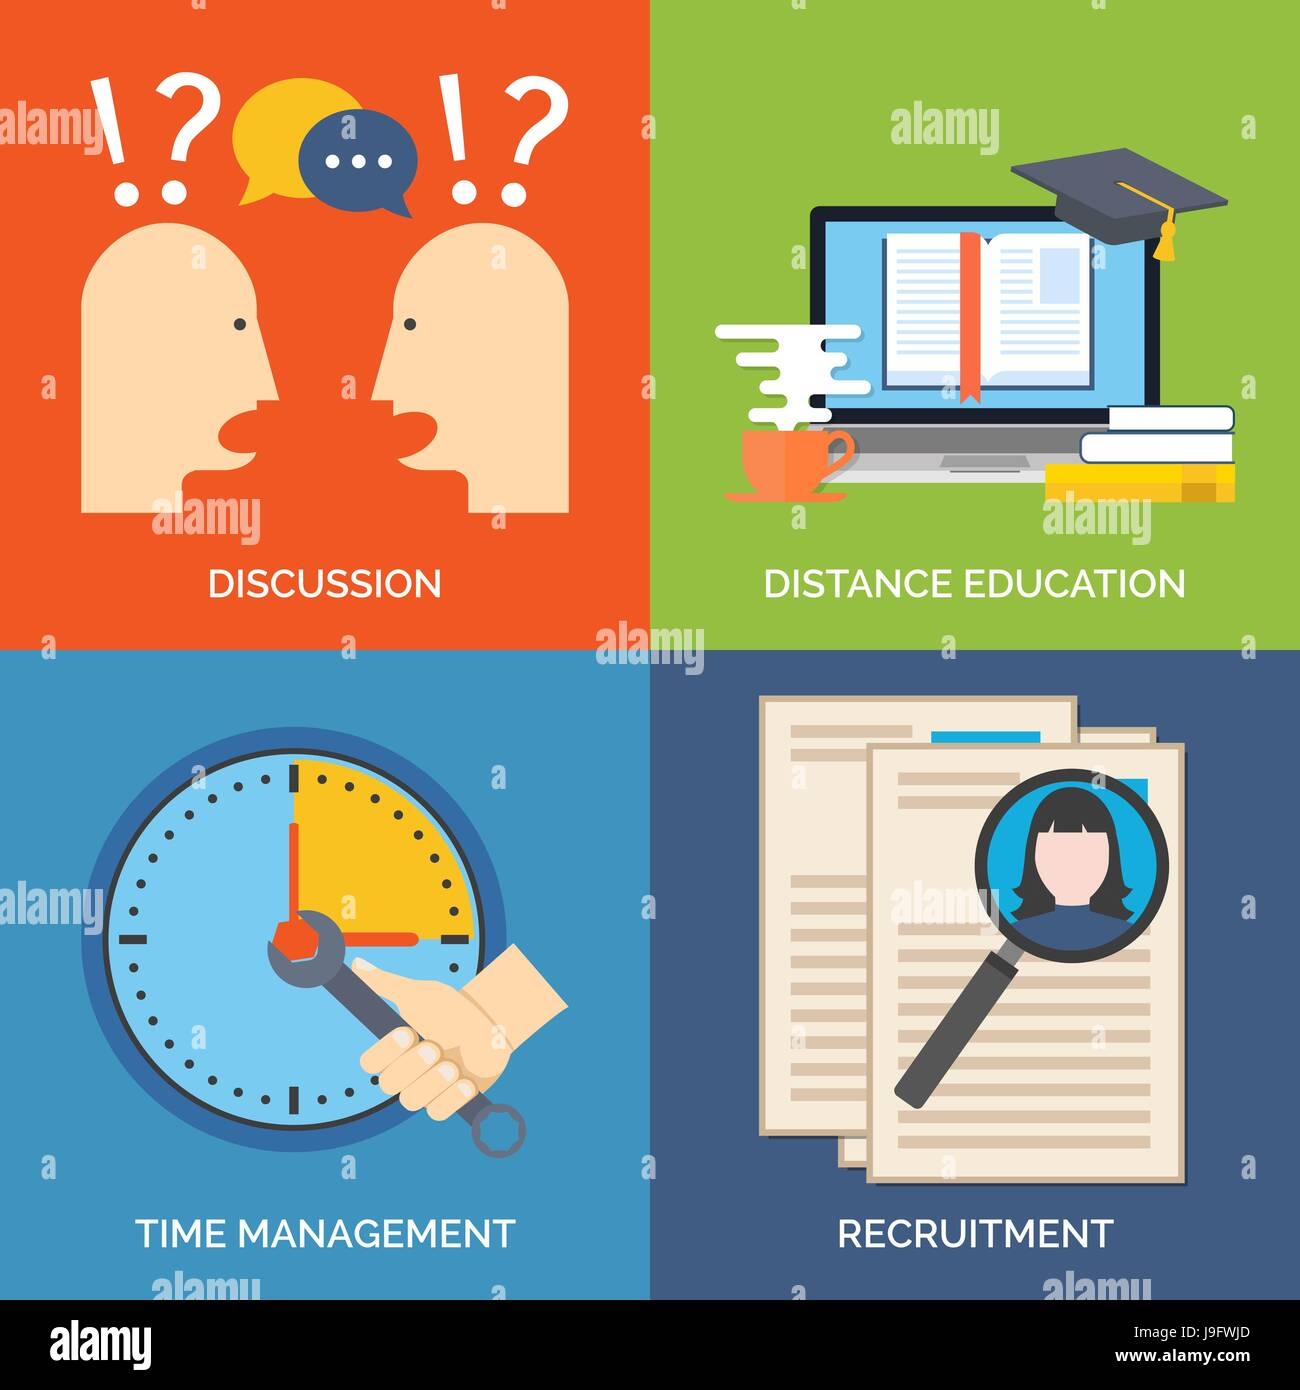 Set of flat design concept icons for business. Discussion, Distance education, Time management and Recruitment. - Stock Vector